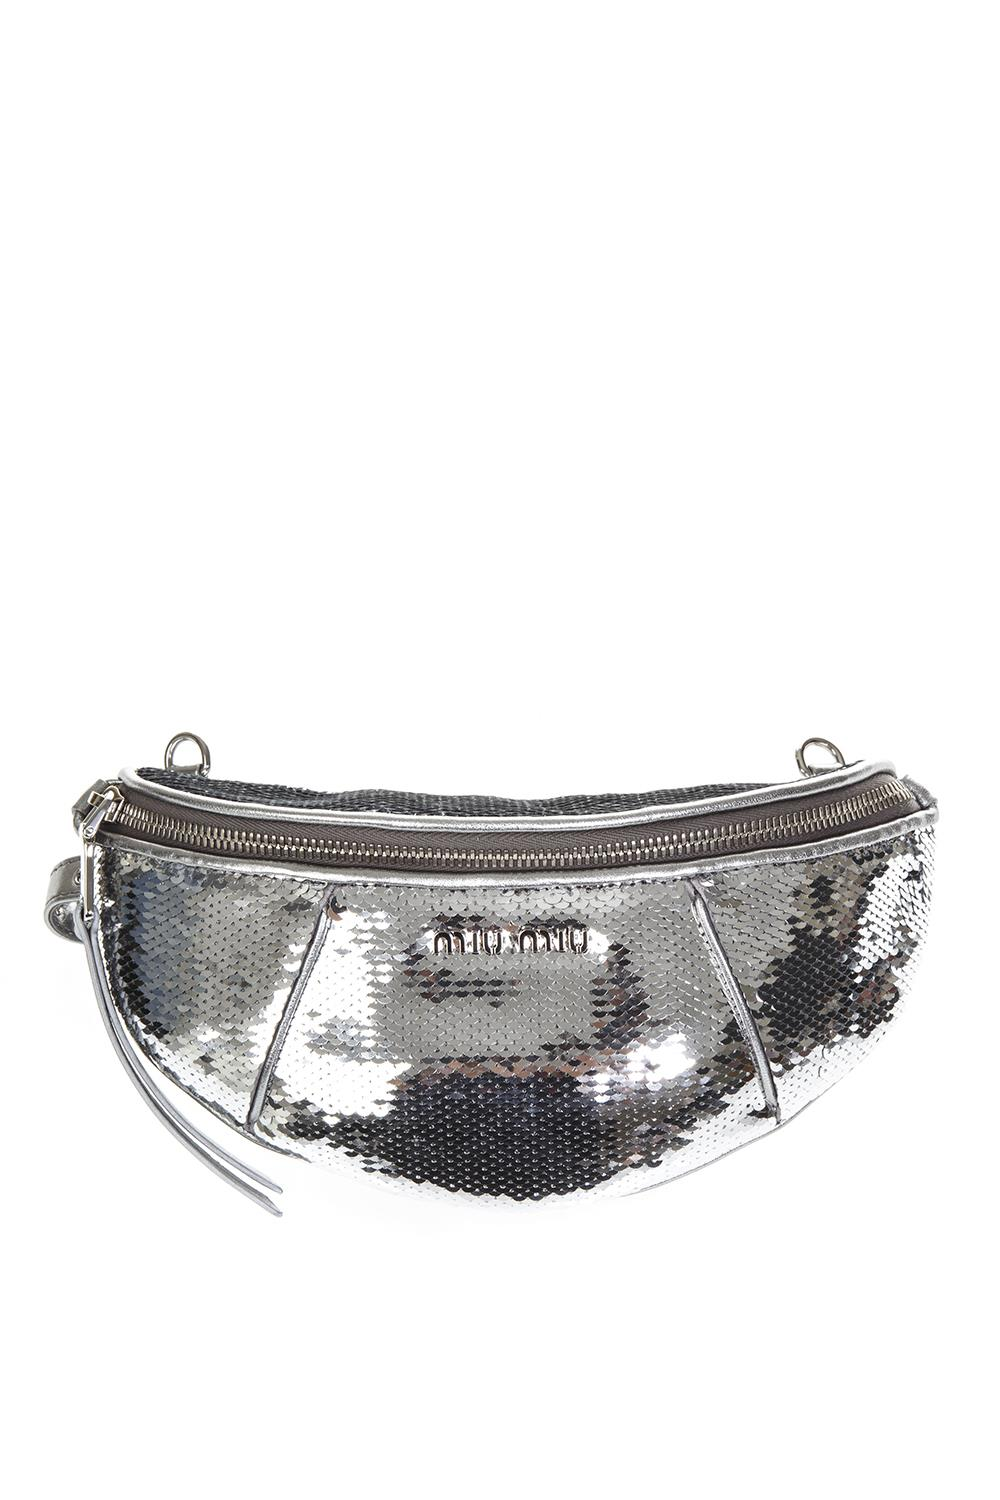 SILVER COLOR SEQUINED BELT BAG FW 2018 - MIU MIU - Boutique Galiano eec3eb83d32a2